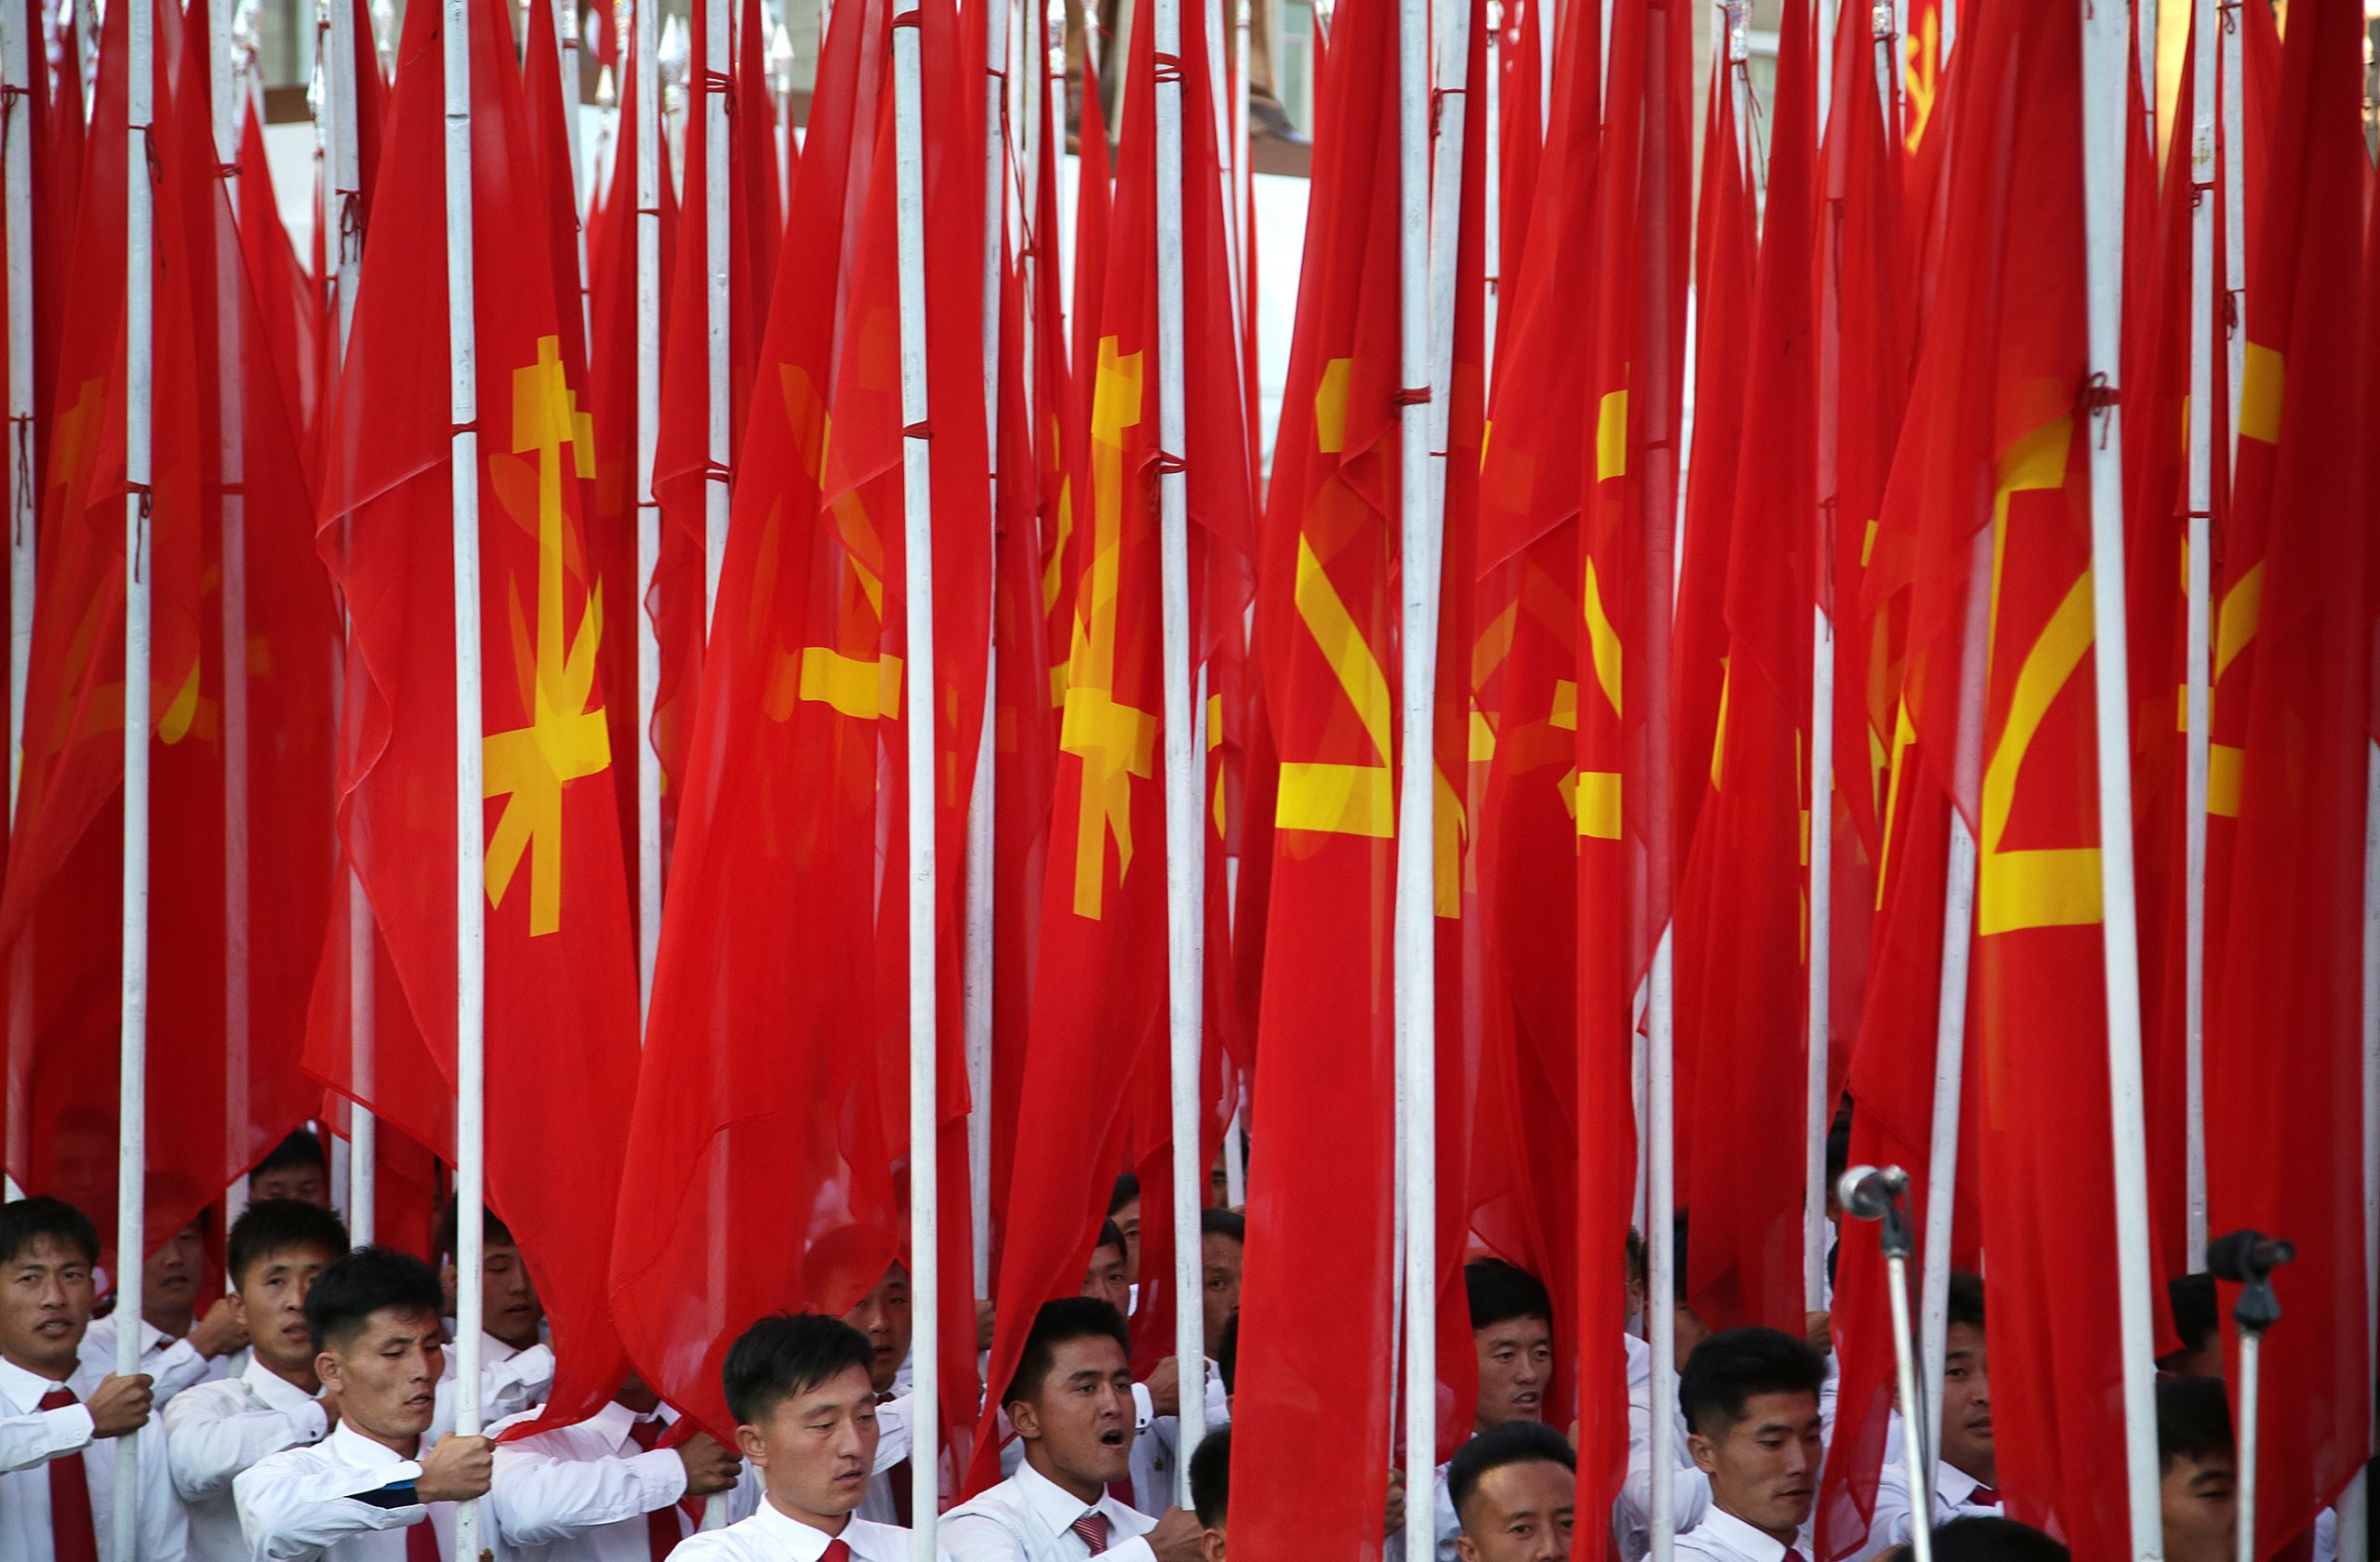 North Korean men carrying the ruling Workers' Party flag, march during a military parade in Pyongyang, North Korea, Saturday, Oct. 10, 2015. North Korean leader Kim Jong Un declared Saturday that his country was ready to stand up to any threat posed by the United States as he spoke at a lavish military parade to mark the 70th anniversary of the North's ruling party and trumpet his third-generation leadership. (AP Photo/Wong Maye-E)